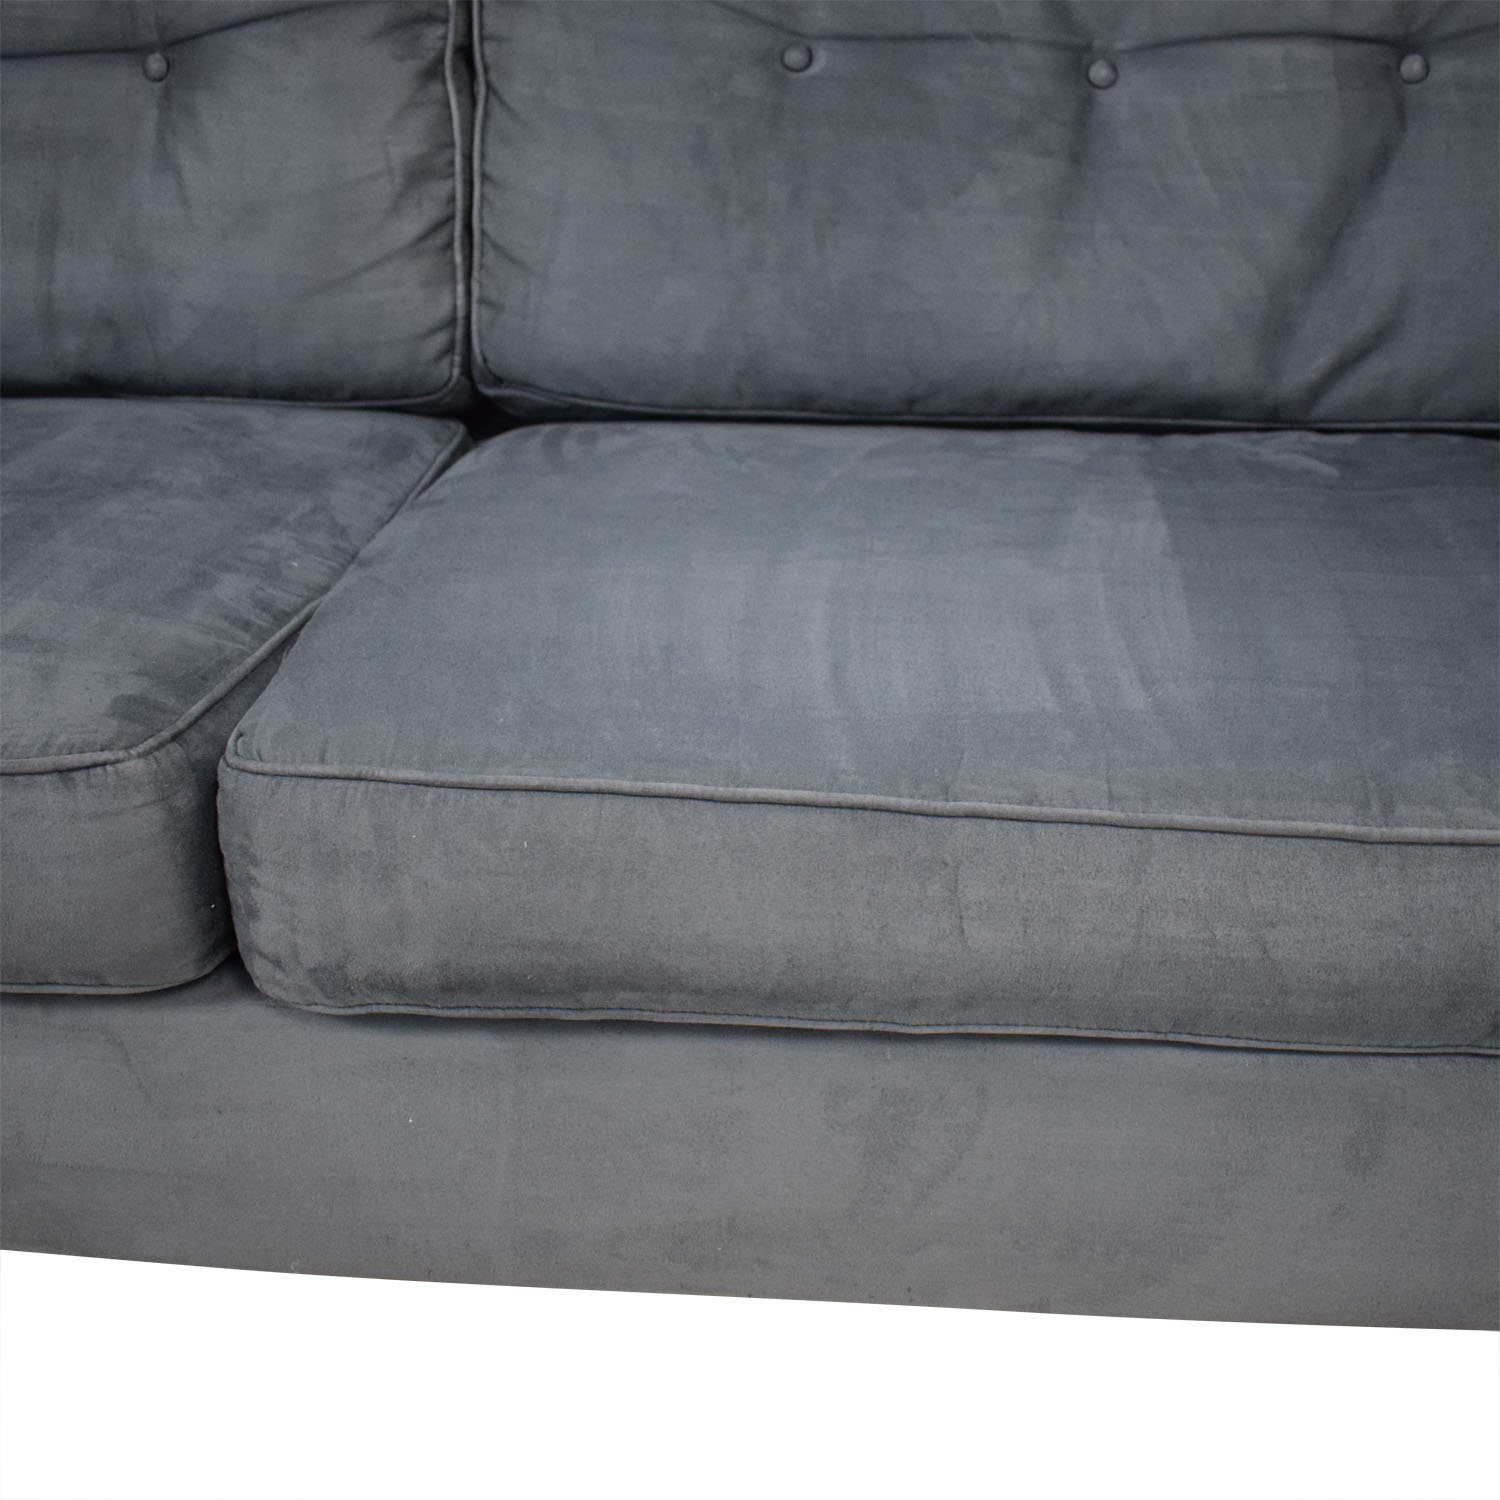 Bauhaus Furniture Bauhaus Furniture Navy Tufted Microfiber Sofa price